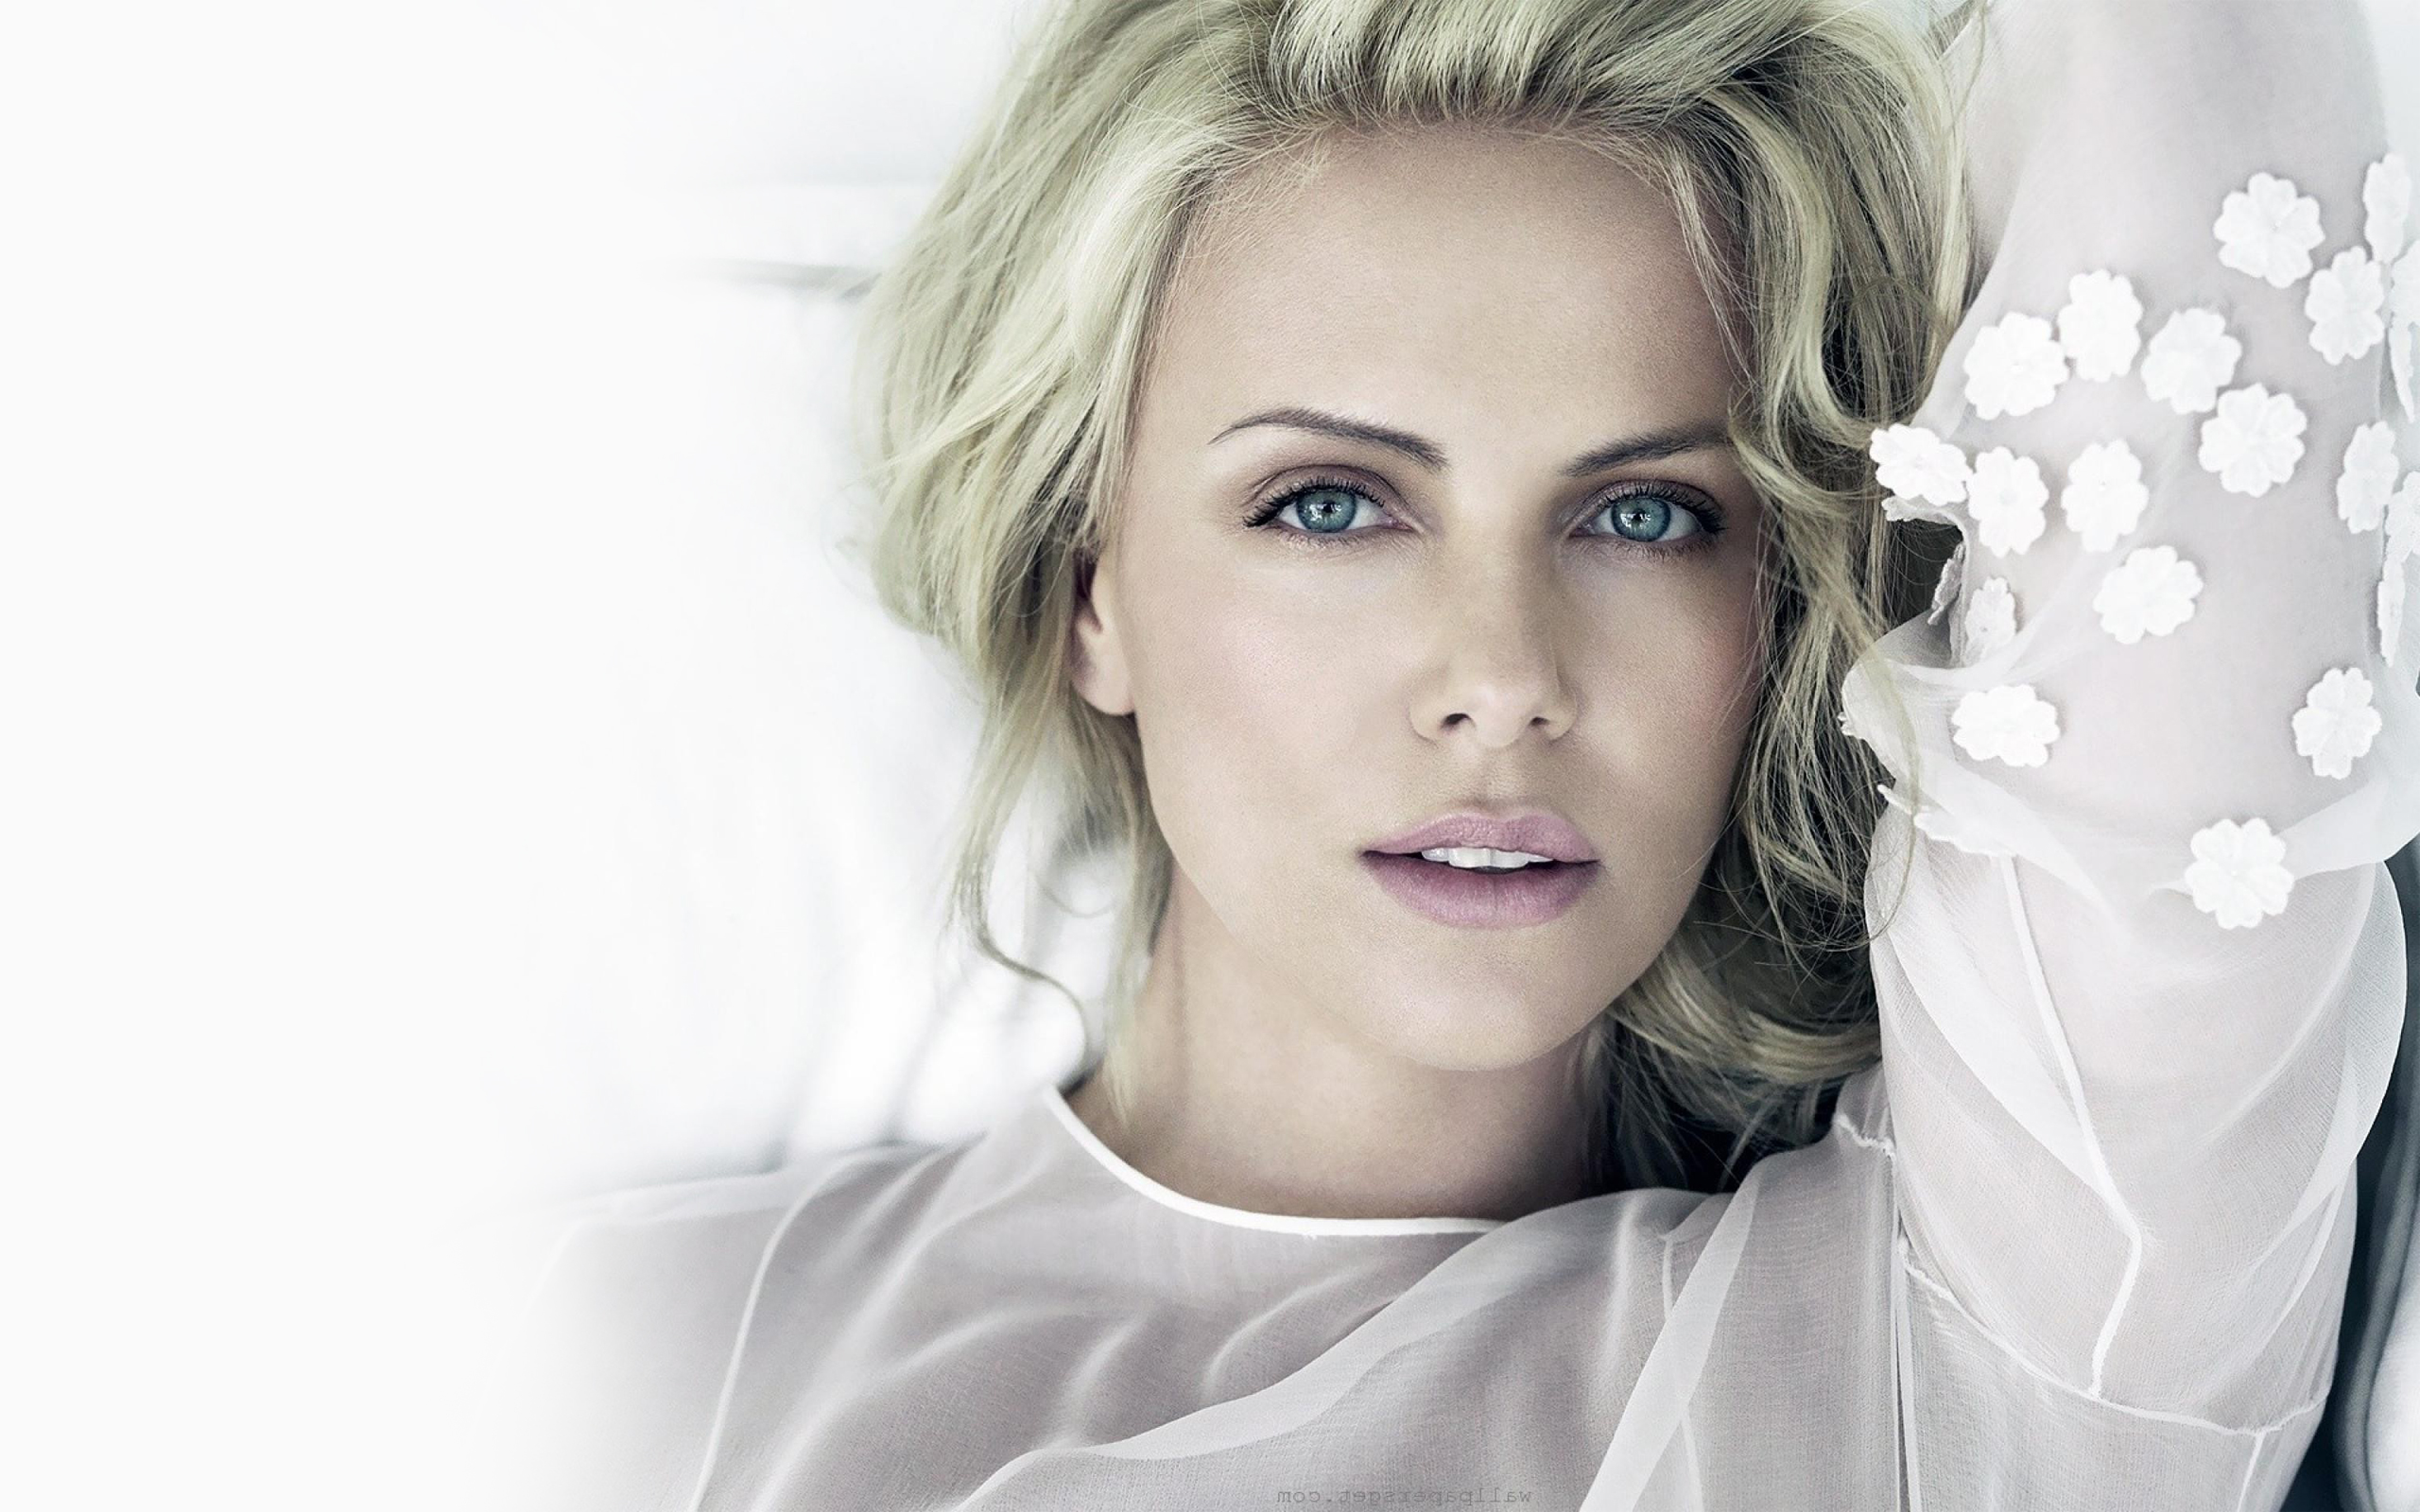 Charlize Theron Widescreen 6 Thumb